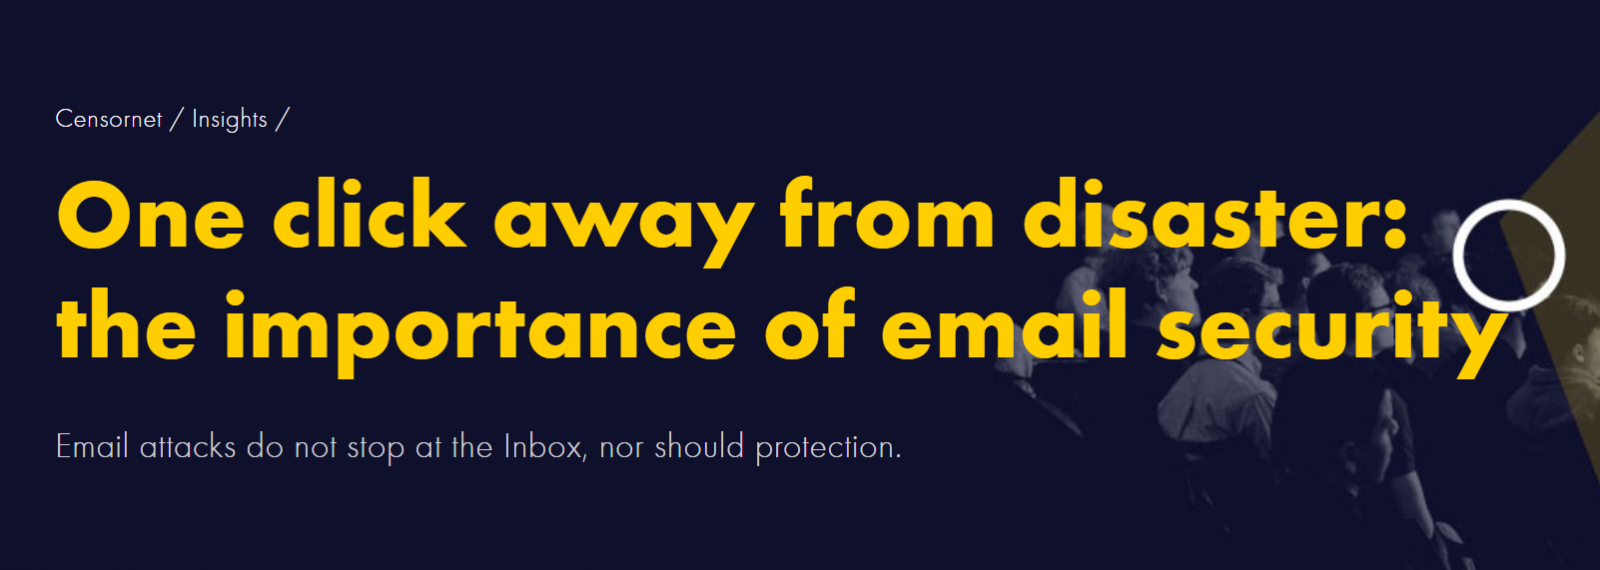 One click away from disaster the importance of email security